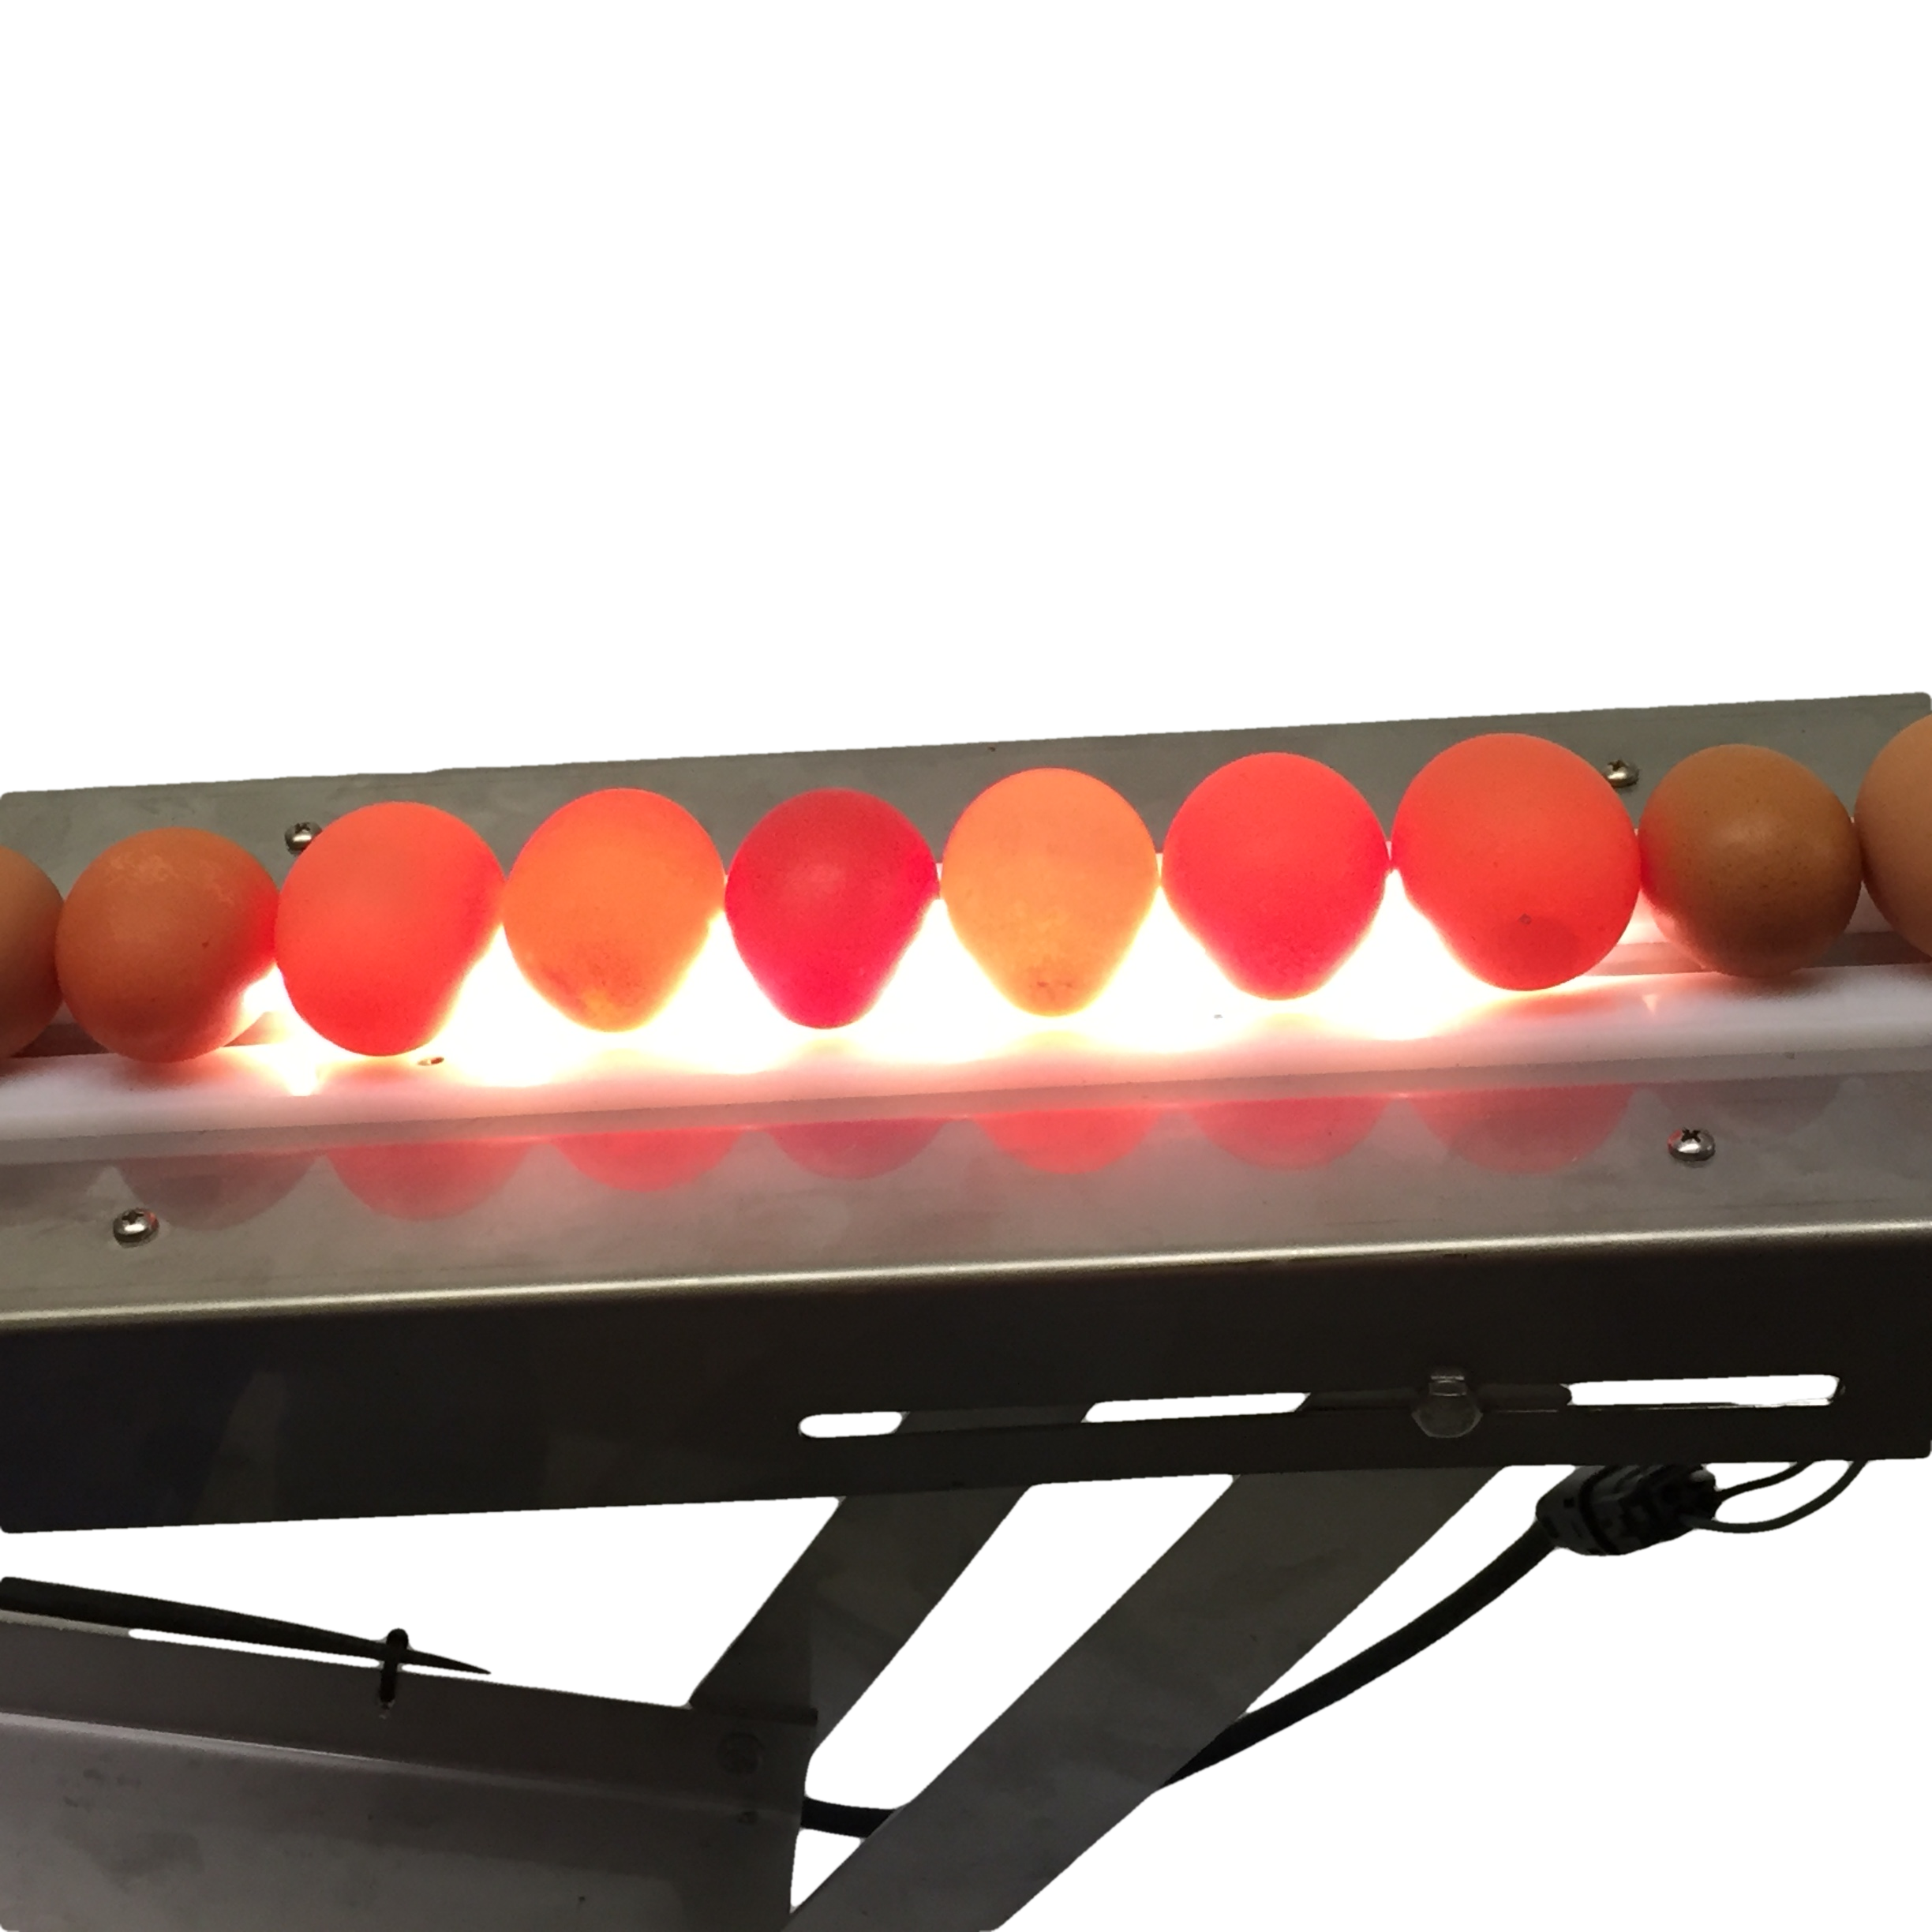 Optional LED candling system mounted under the runway into the egg washer.